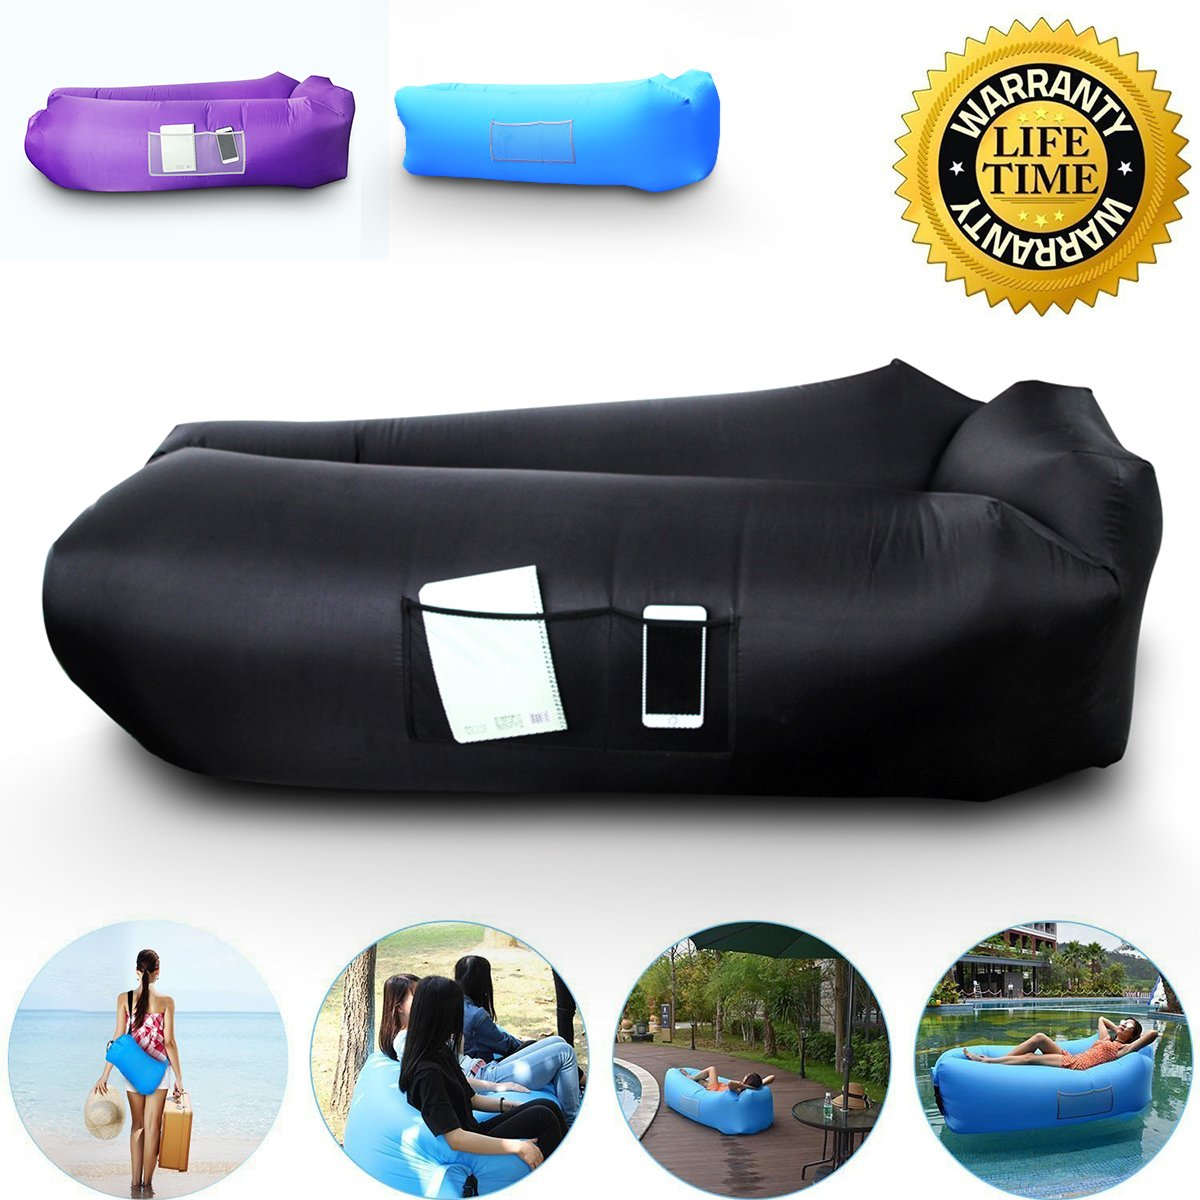 Fine Anglink Outdoor Inflatable Lounger Couch Thick Durable Comfortable Air Sofa Blow Up Lounge Sofa Carrying Bag Travelling Camping Hiking Park Pool Gmtry Best Dining Table And Chair Ideas Images Gmtryco